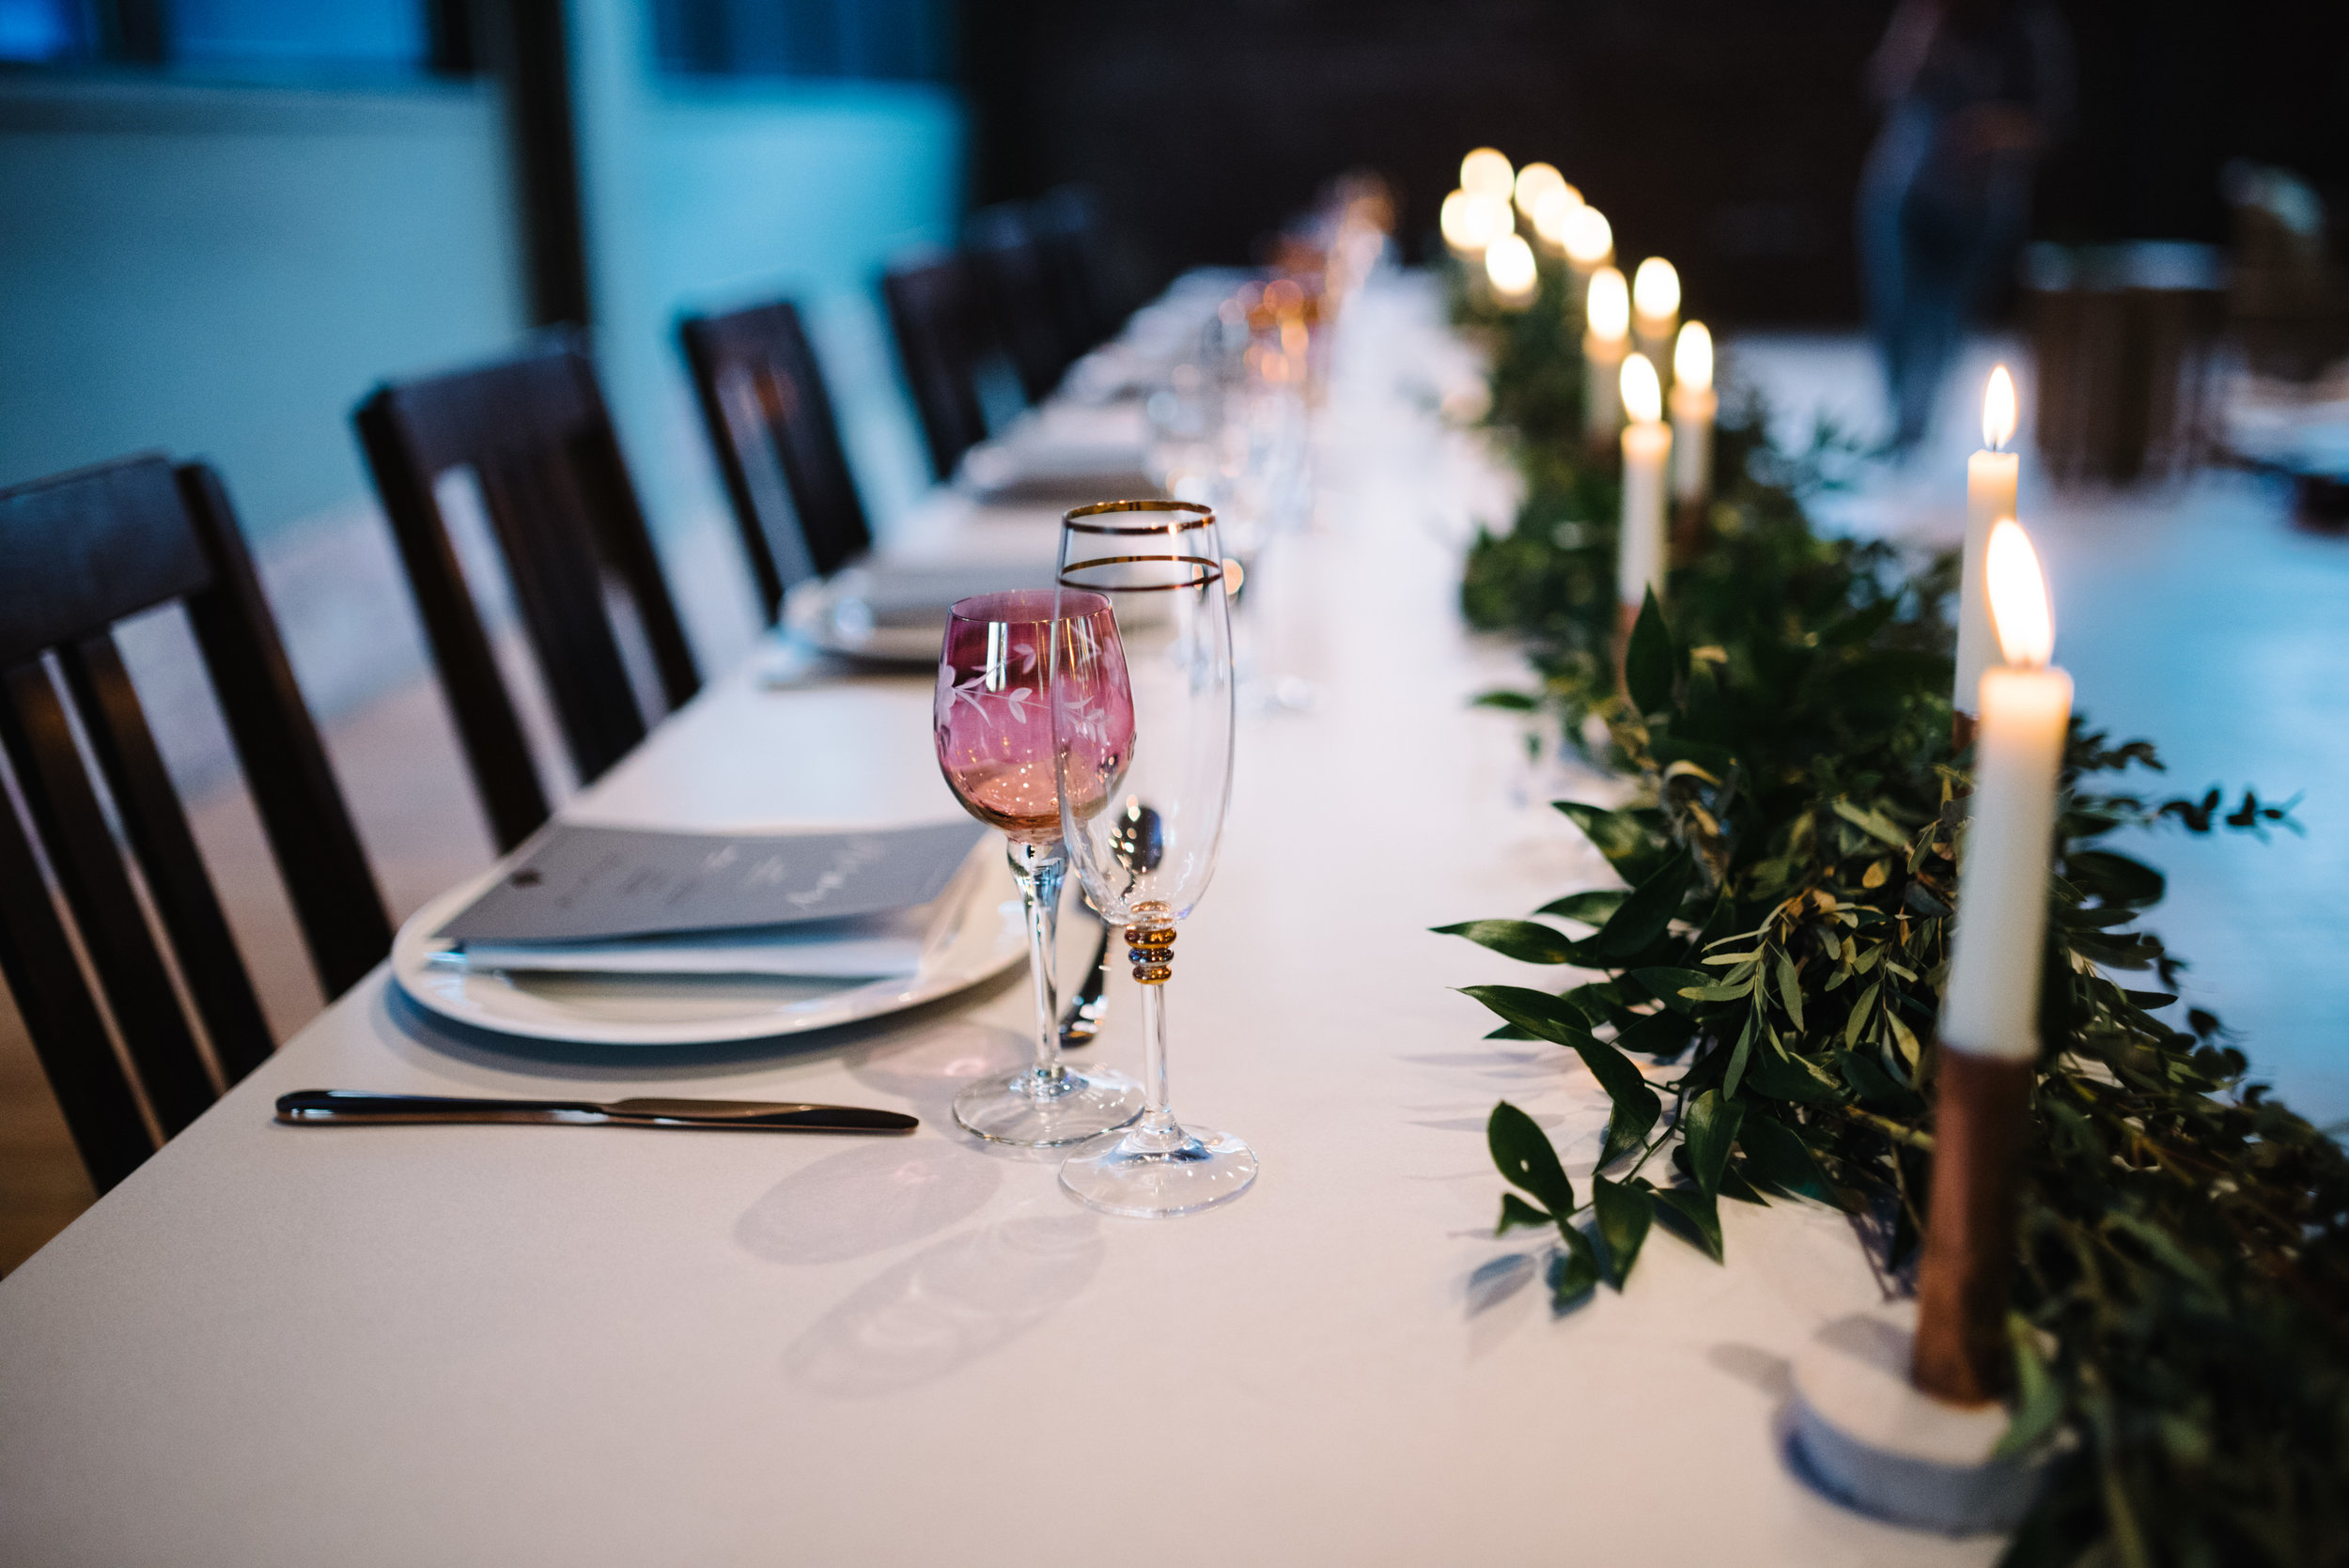 Modern Wedding Inspiration Shoot in Glasgow Brewery With a Frill Installation, Candy Floss and Neon 00207.jpg